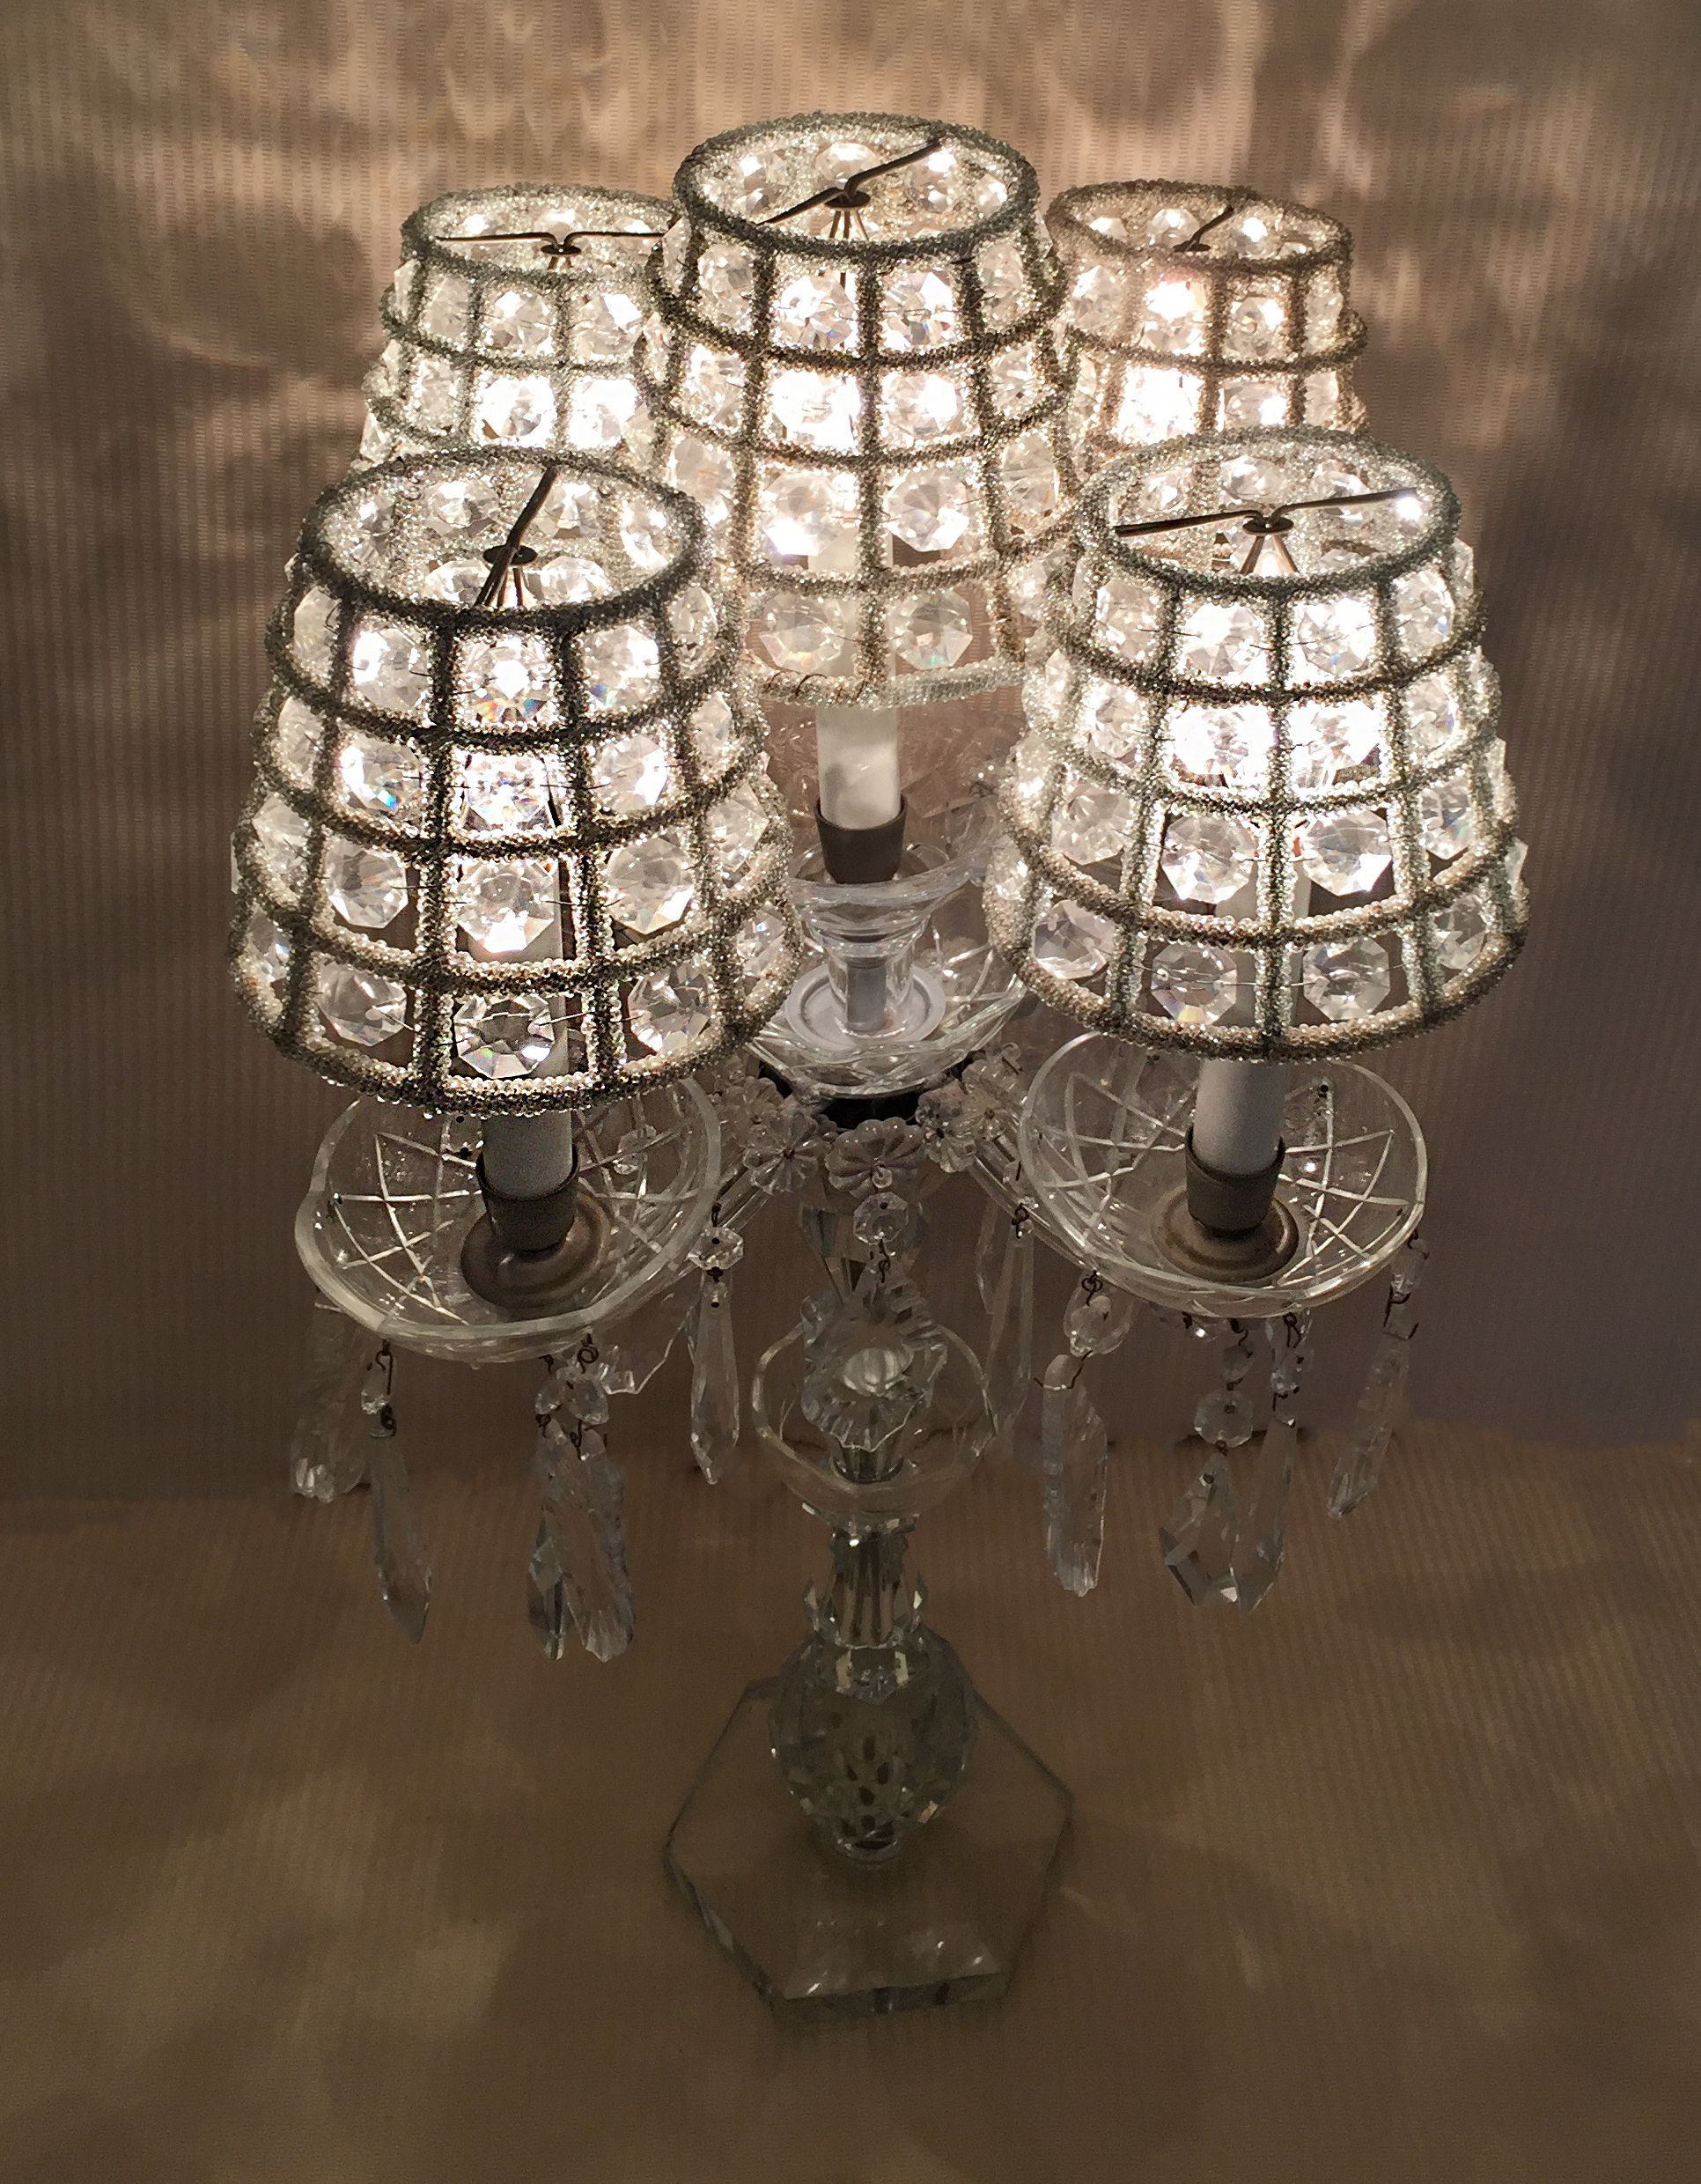 Cut crystal lamp with crystal shades from Jan Wolf Studio 1932x2480